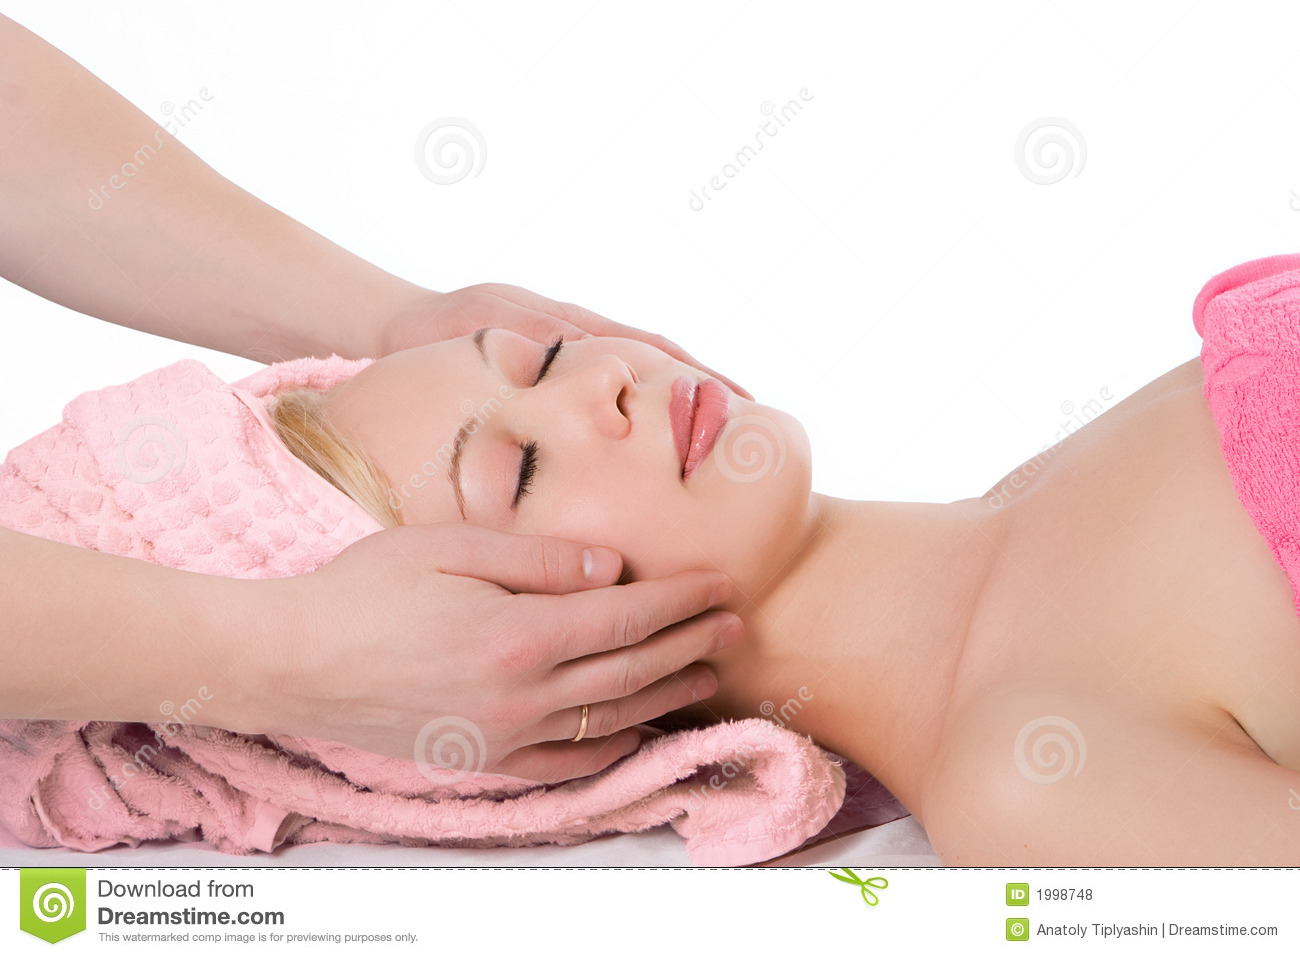 Royalty Free Stock Photos: Man hand facial massage to blonde girl